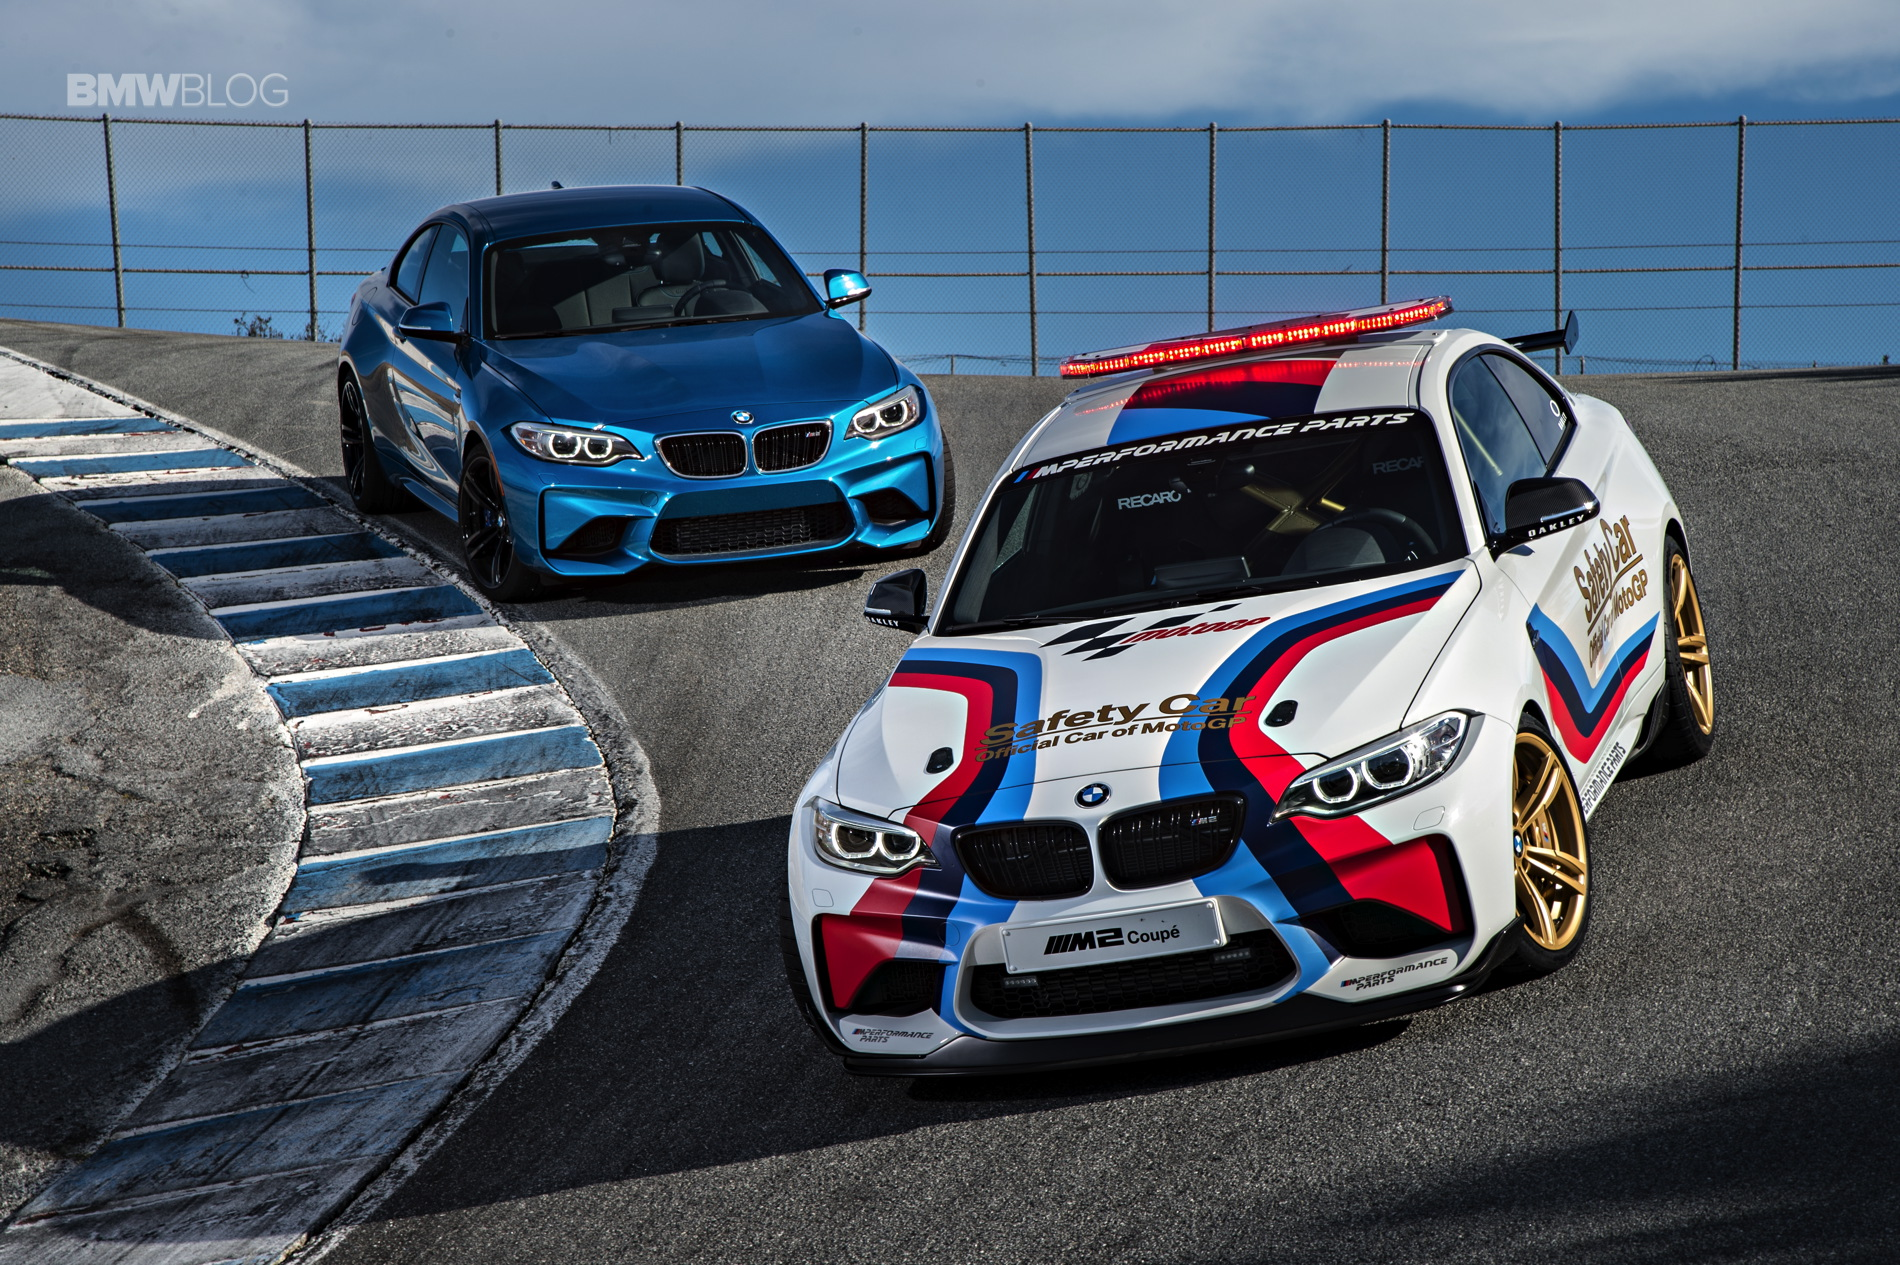 BMW-M2-Safety-Car-MotoGP-2016-autonovosti.me-6